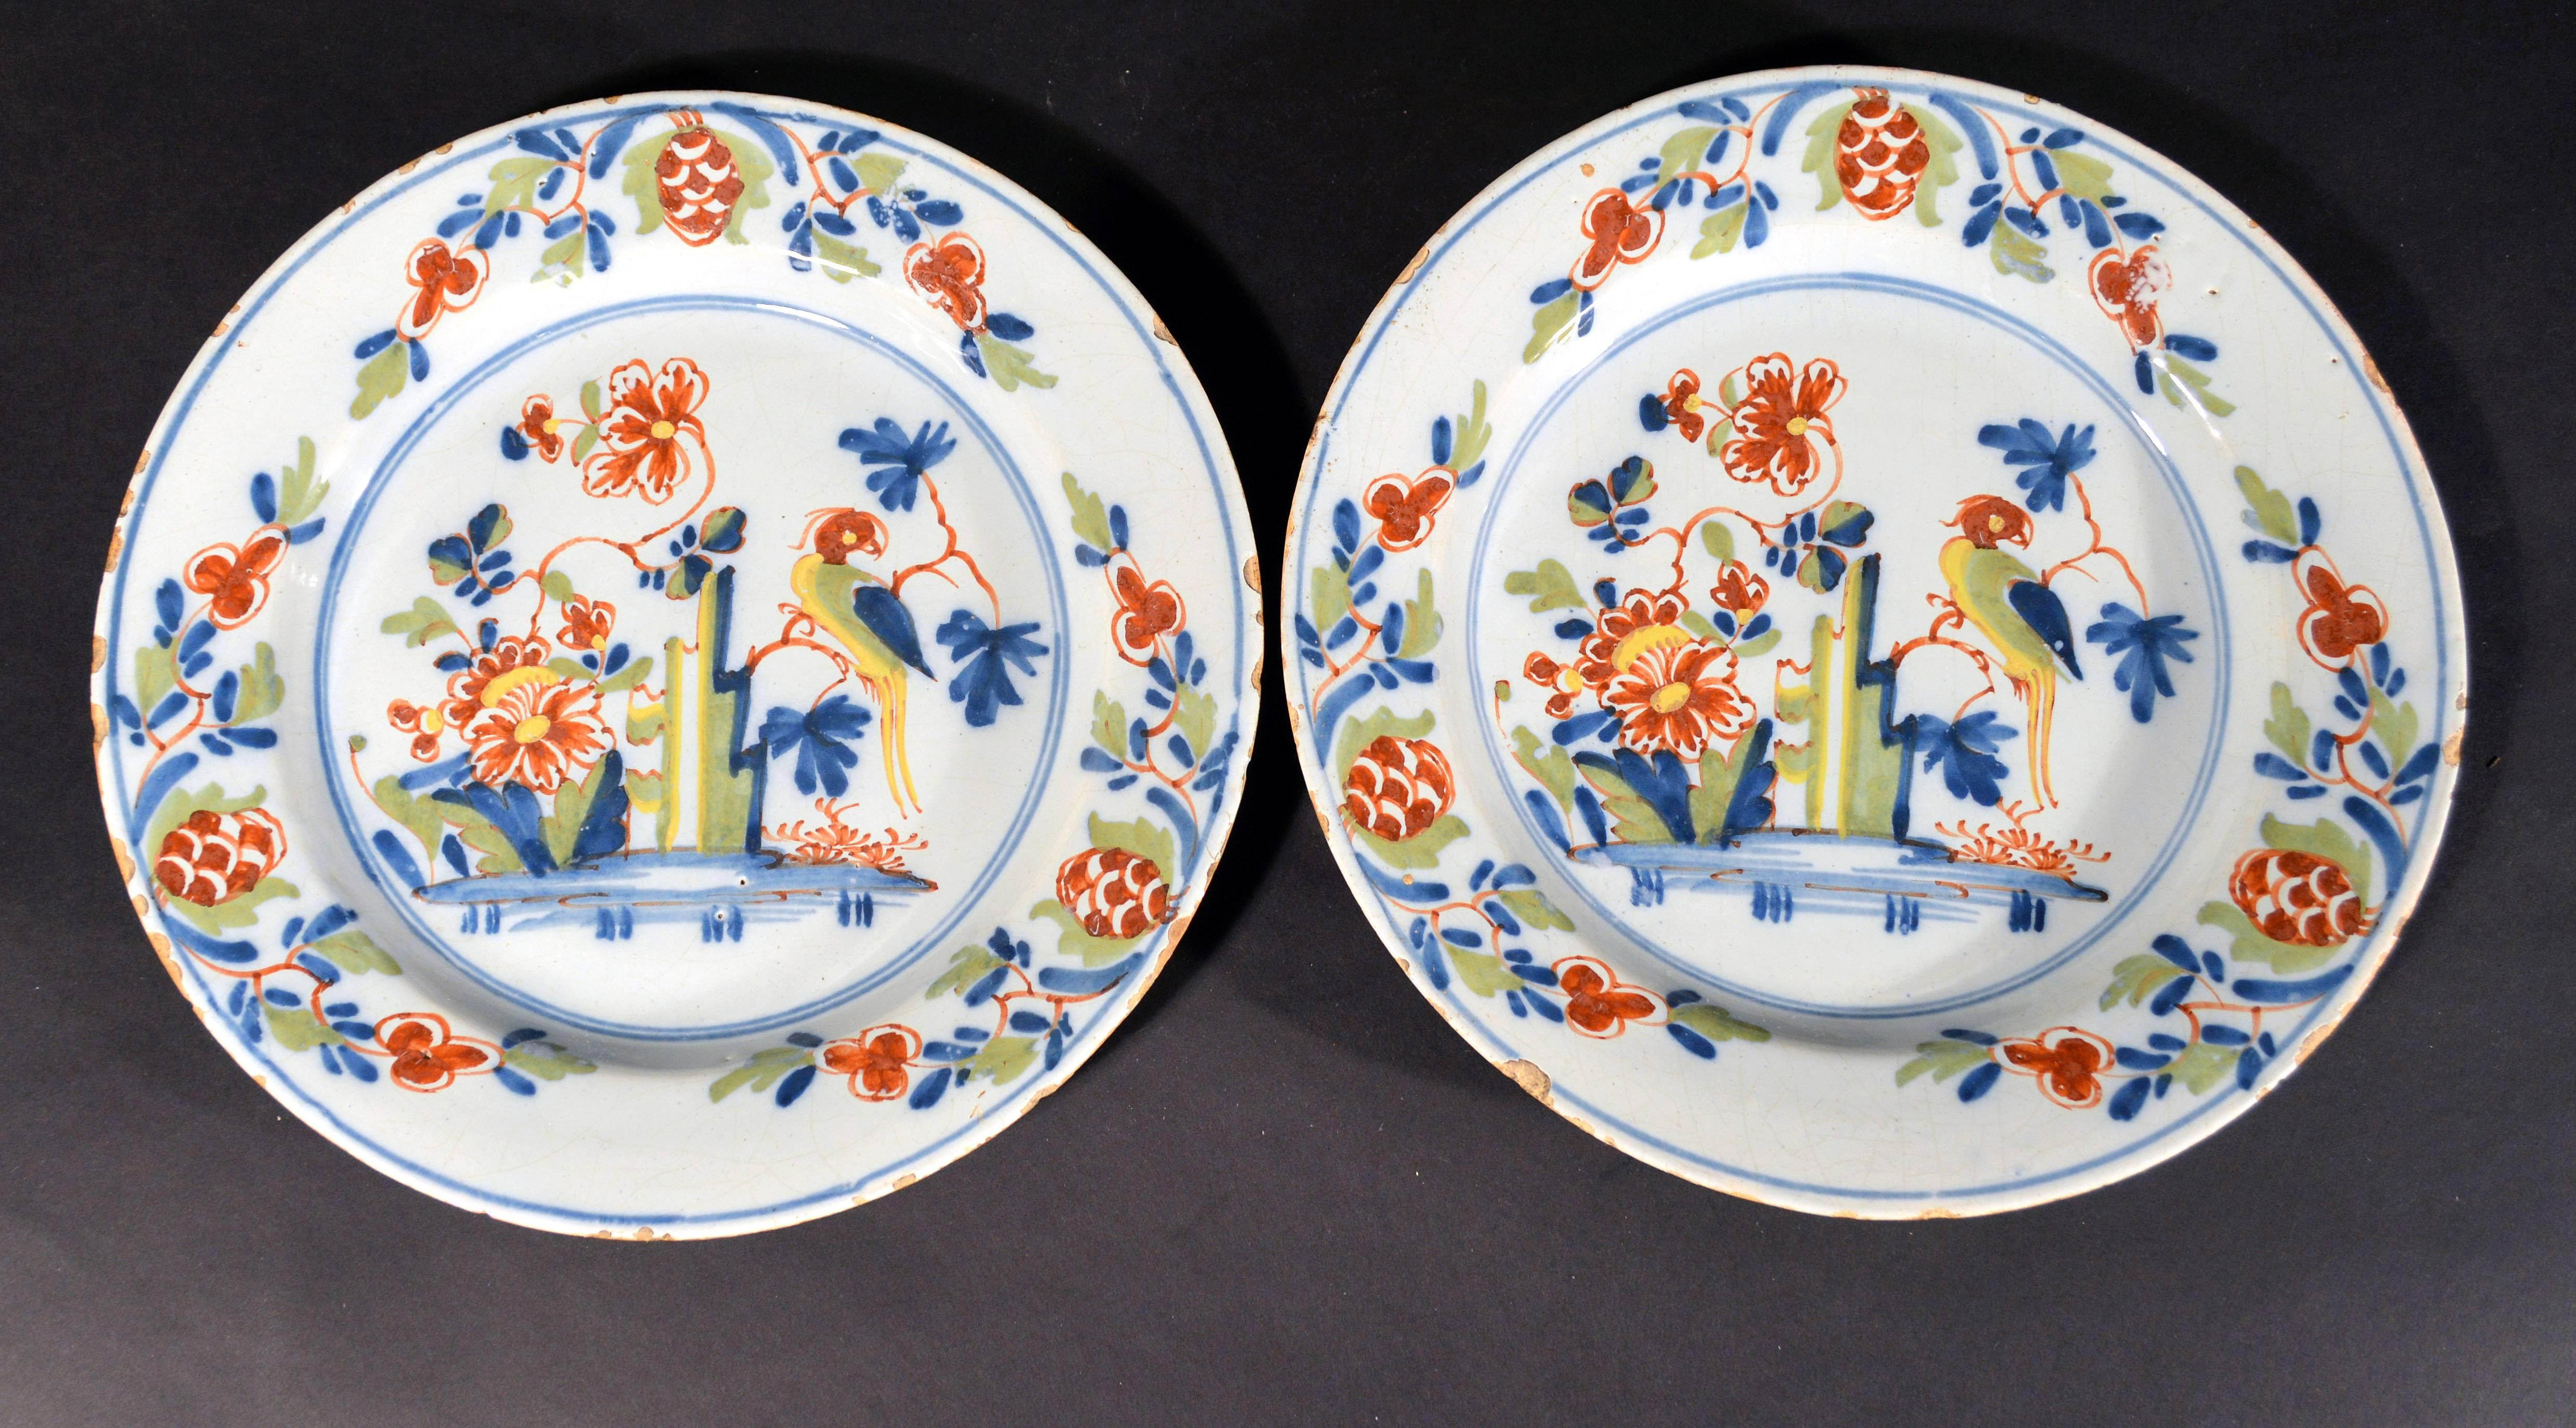 Lambeth High Street Delftware Chinoiserie Plates With Parrot 18th-century. For Sale at 1stdibs & Lambeth High Street Delftware Chinoiserie Plates With Parrot 18th ...